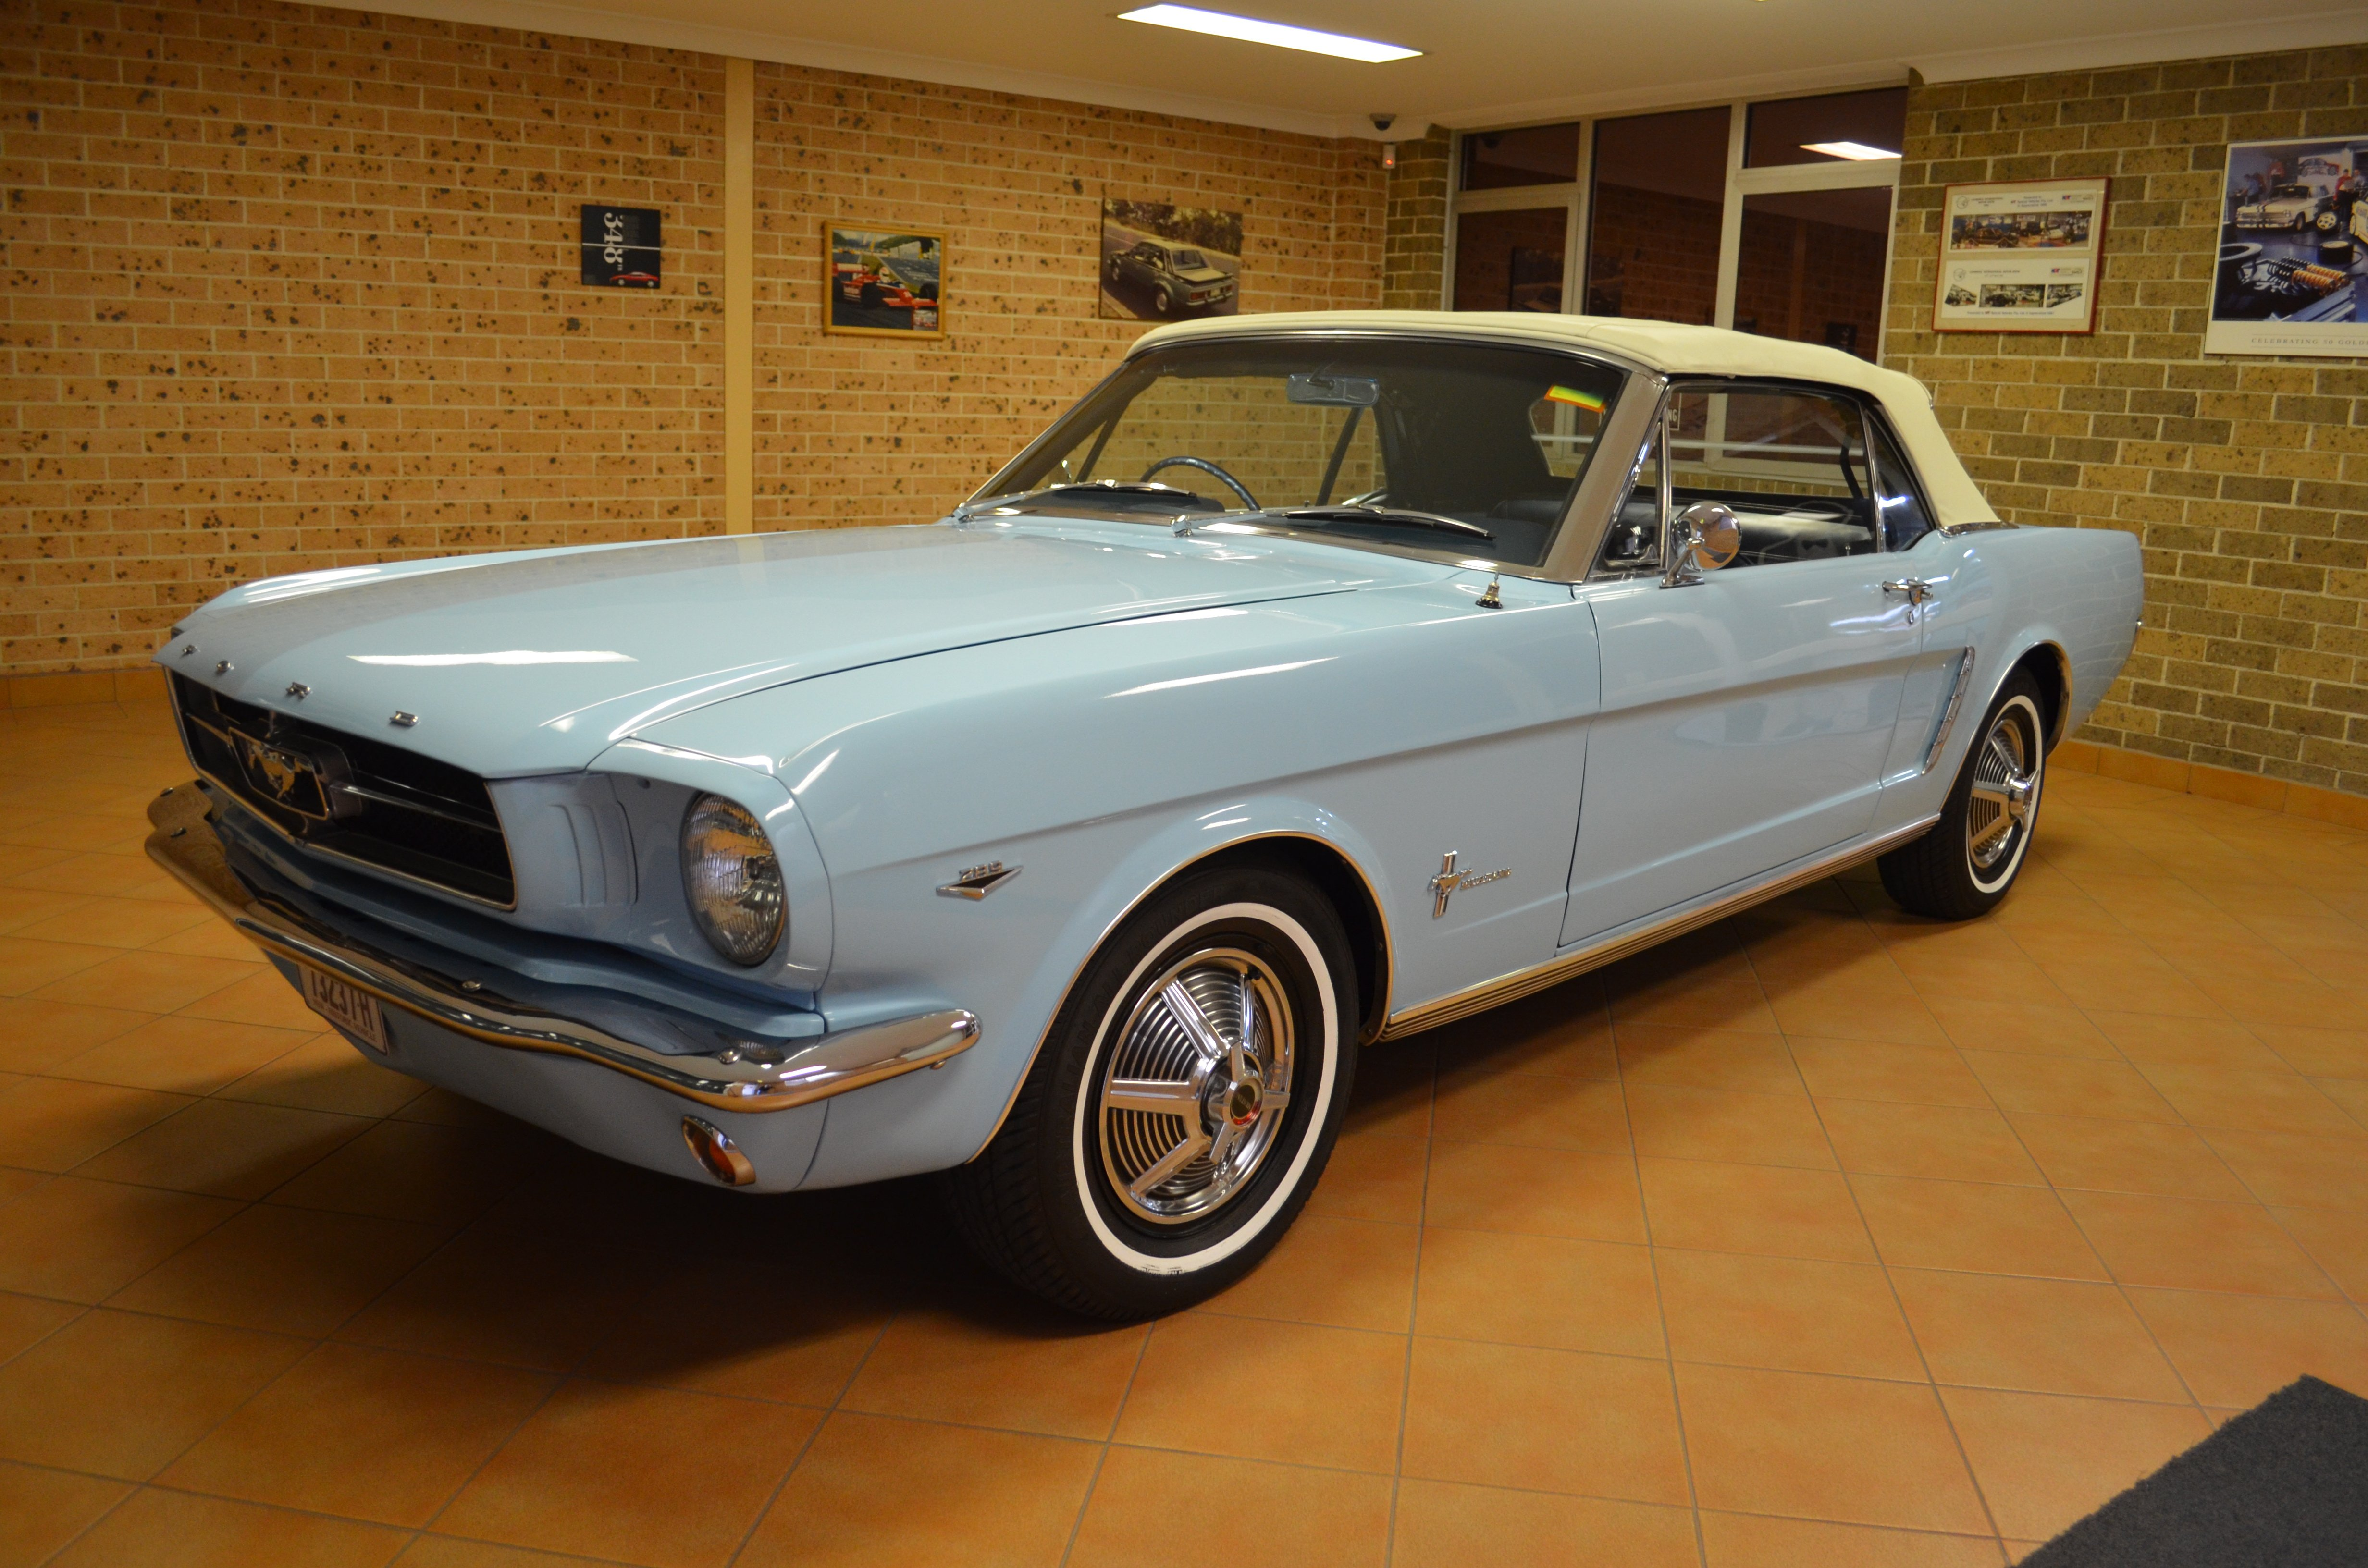 1964 1 2 Ford Mustang Convertible D Code 33266 Miles Muscle Ltd